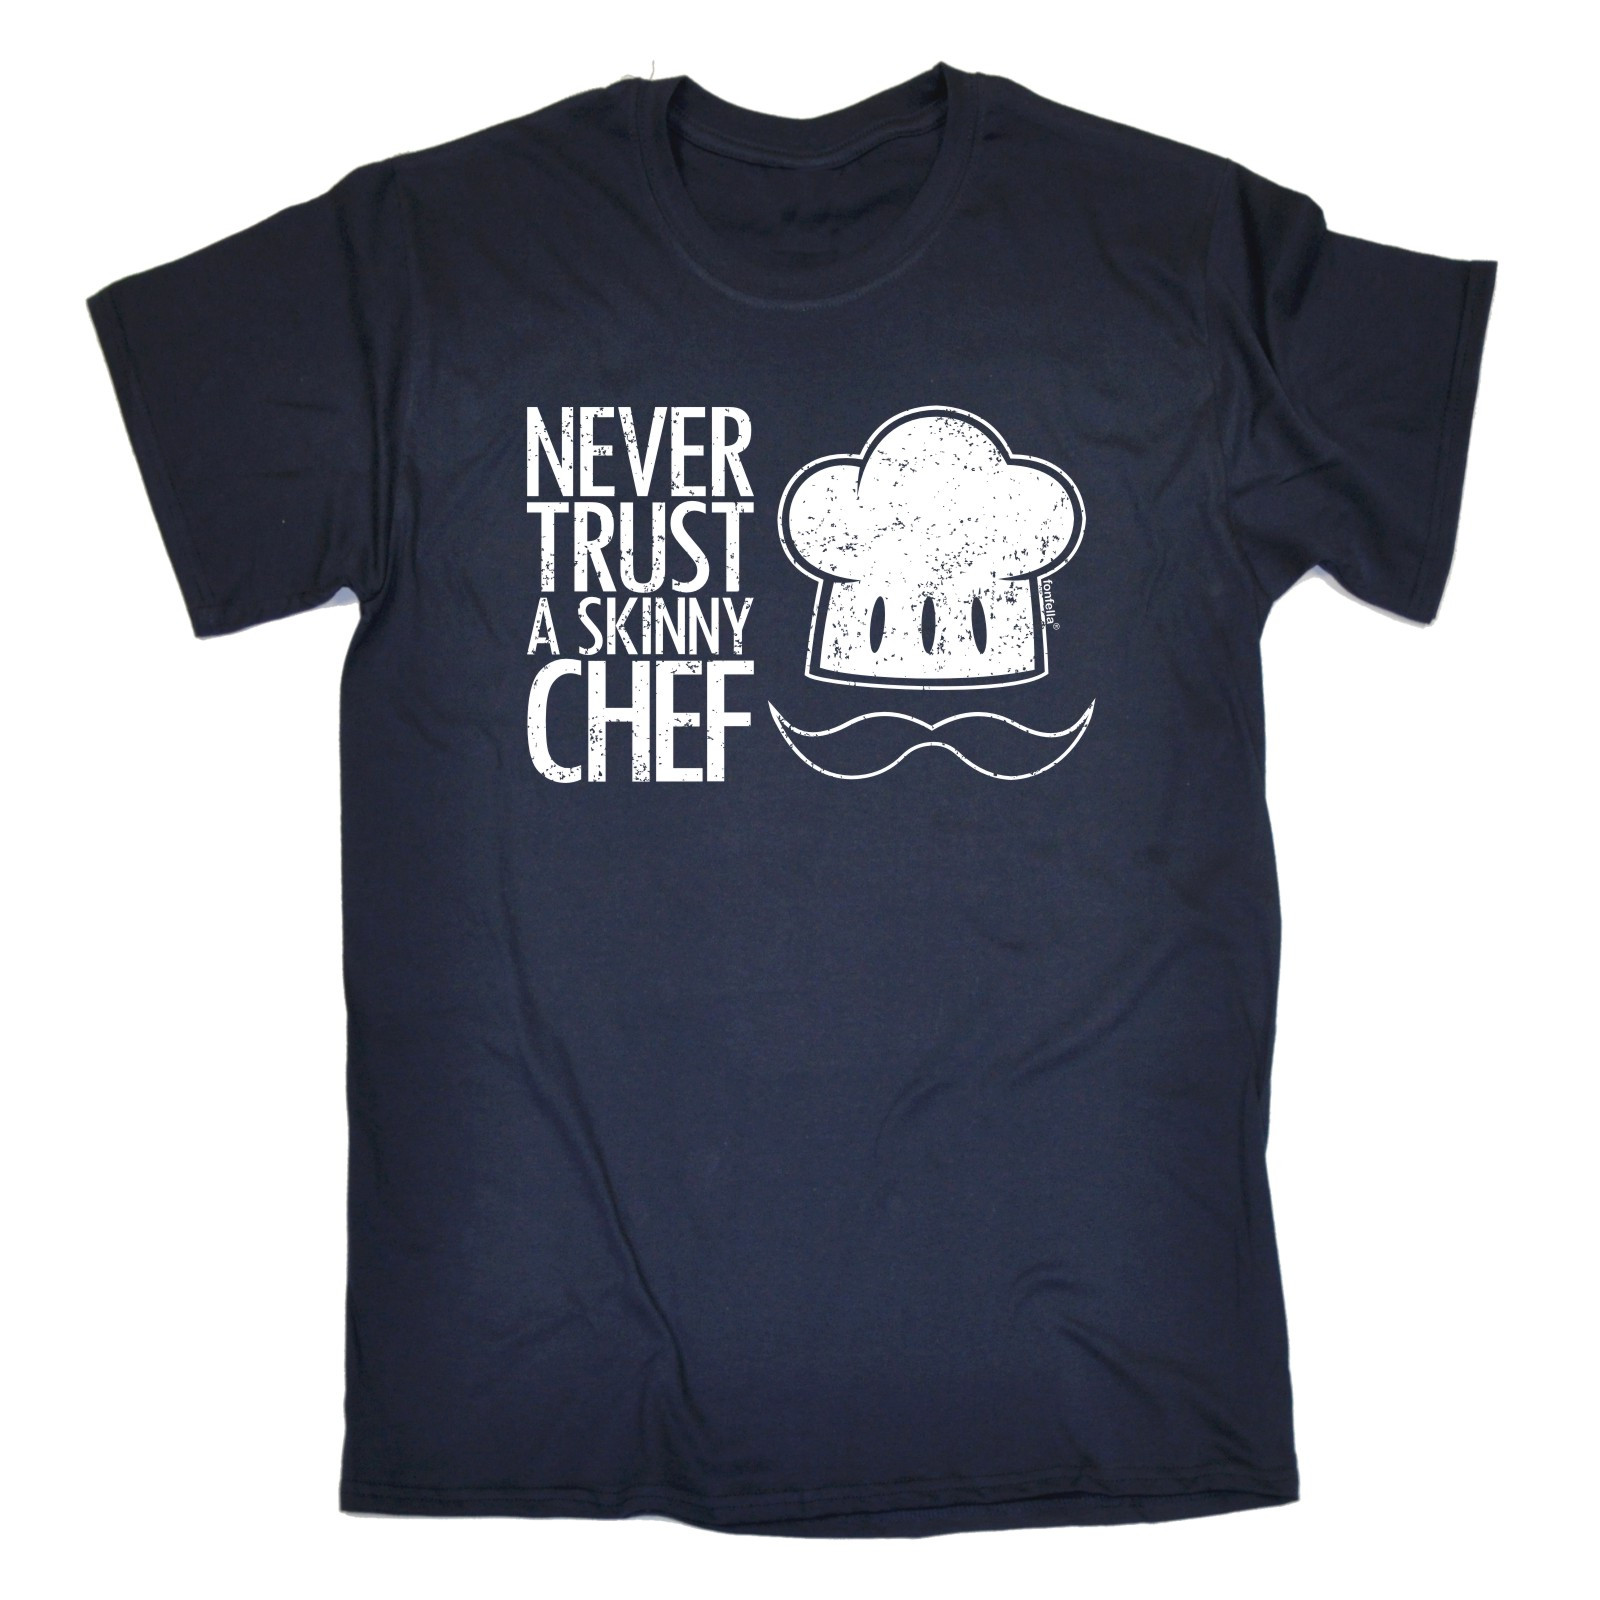 a1e3e5ca529 NEVER TRUST A SKINNY CHEF T SHIRT kitchen cook accessories funny birthday  gift T Shirt Summer Style Fashion Men T Shirt-in T-Shirts from Men s  Clothing on ...